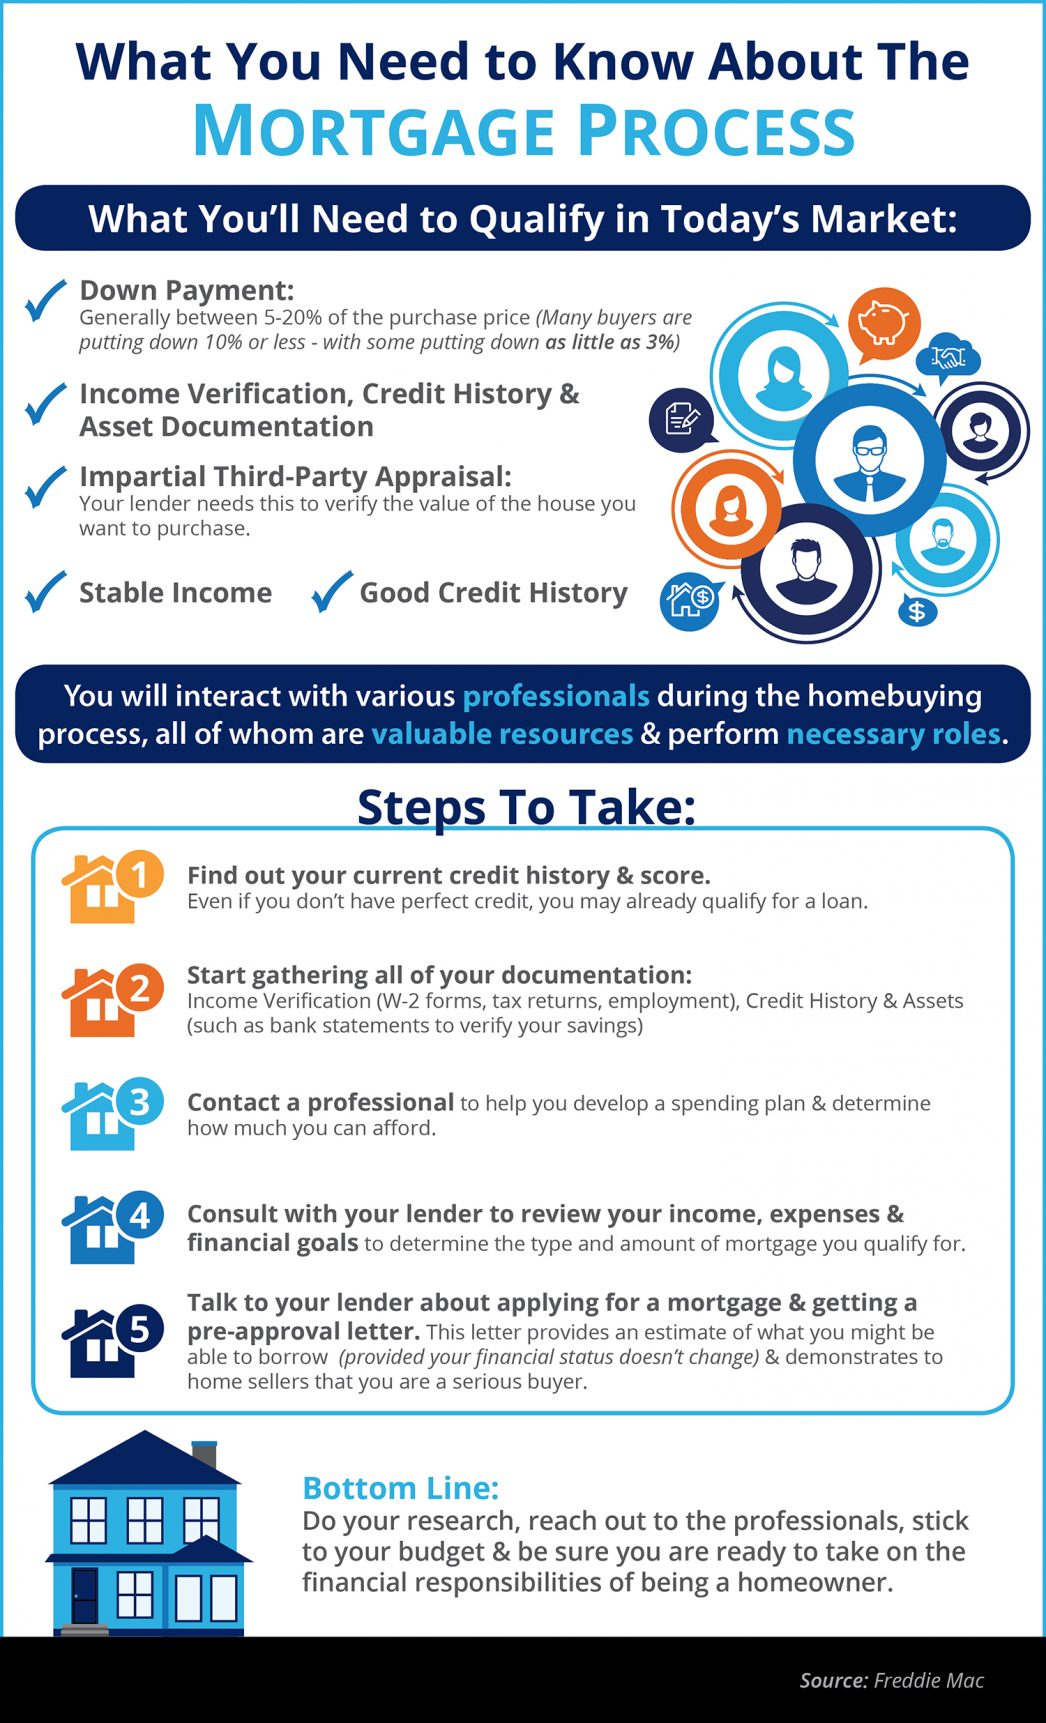 What You Need to Know About Qualifying for a Mortgage [INFOGRAPHIC] | MyKCM